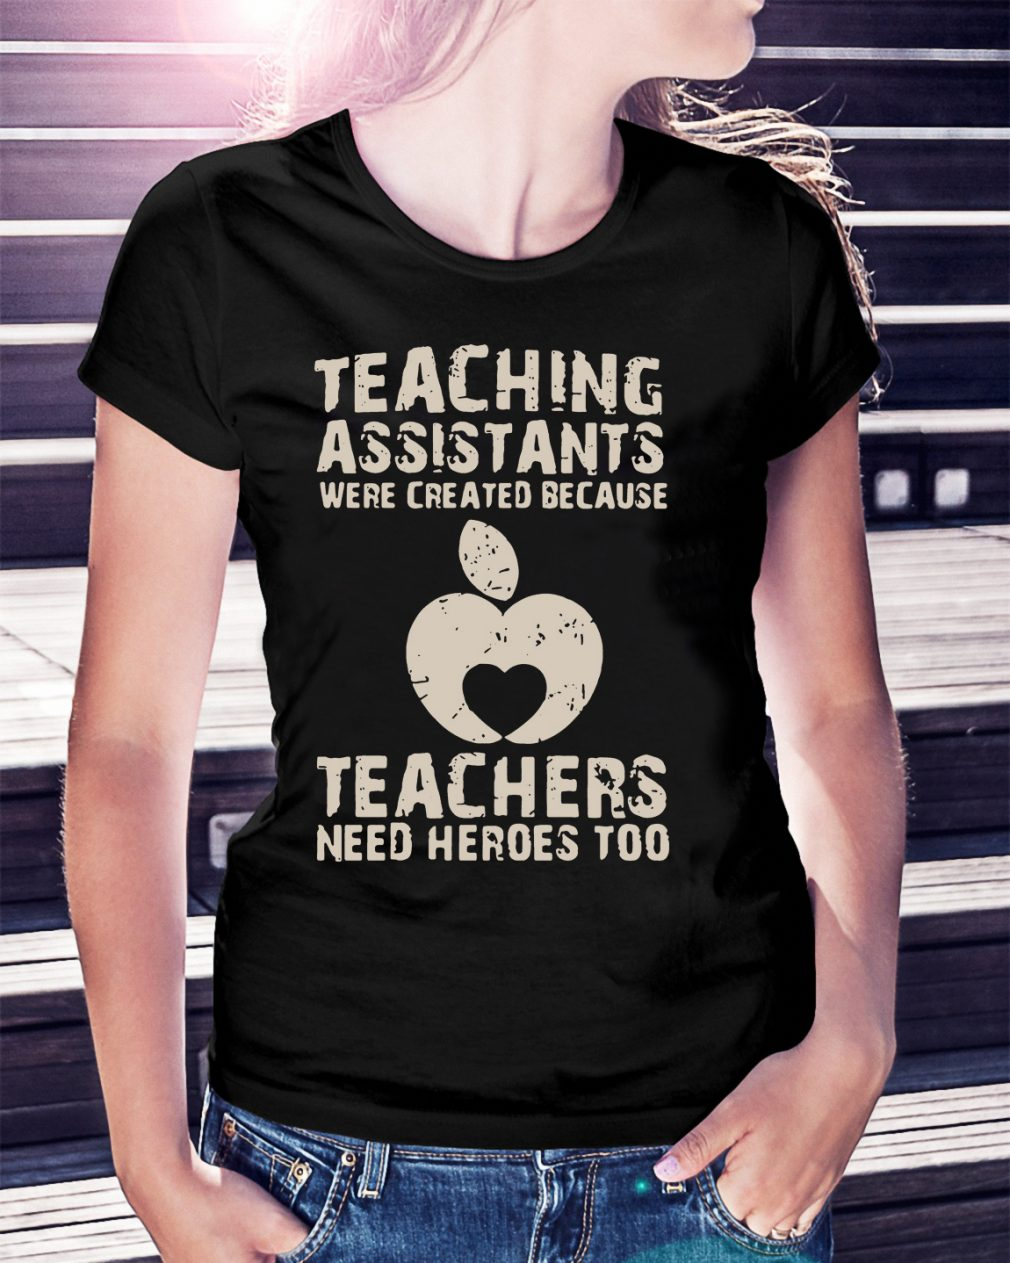 Teaching assistants were created because teachers need heroes too shirt